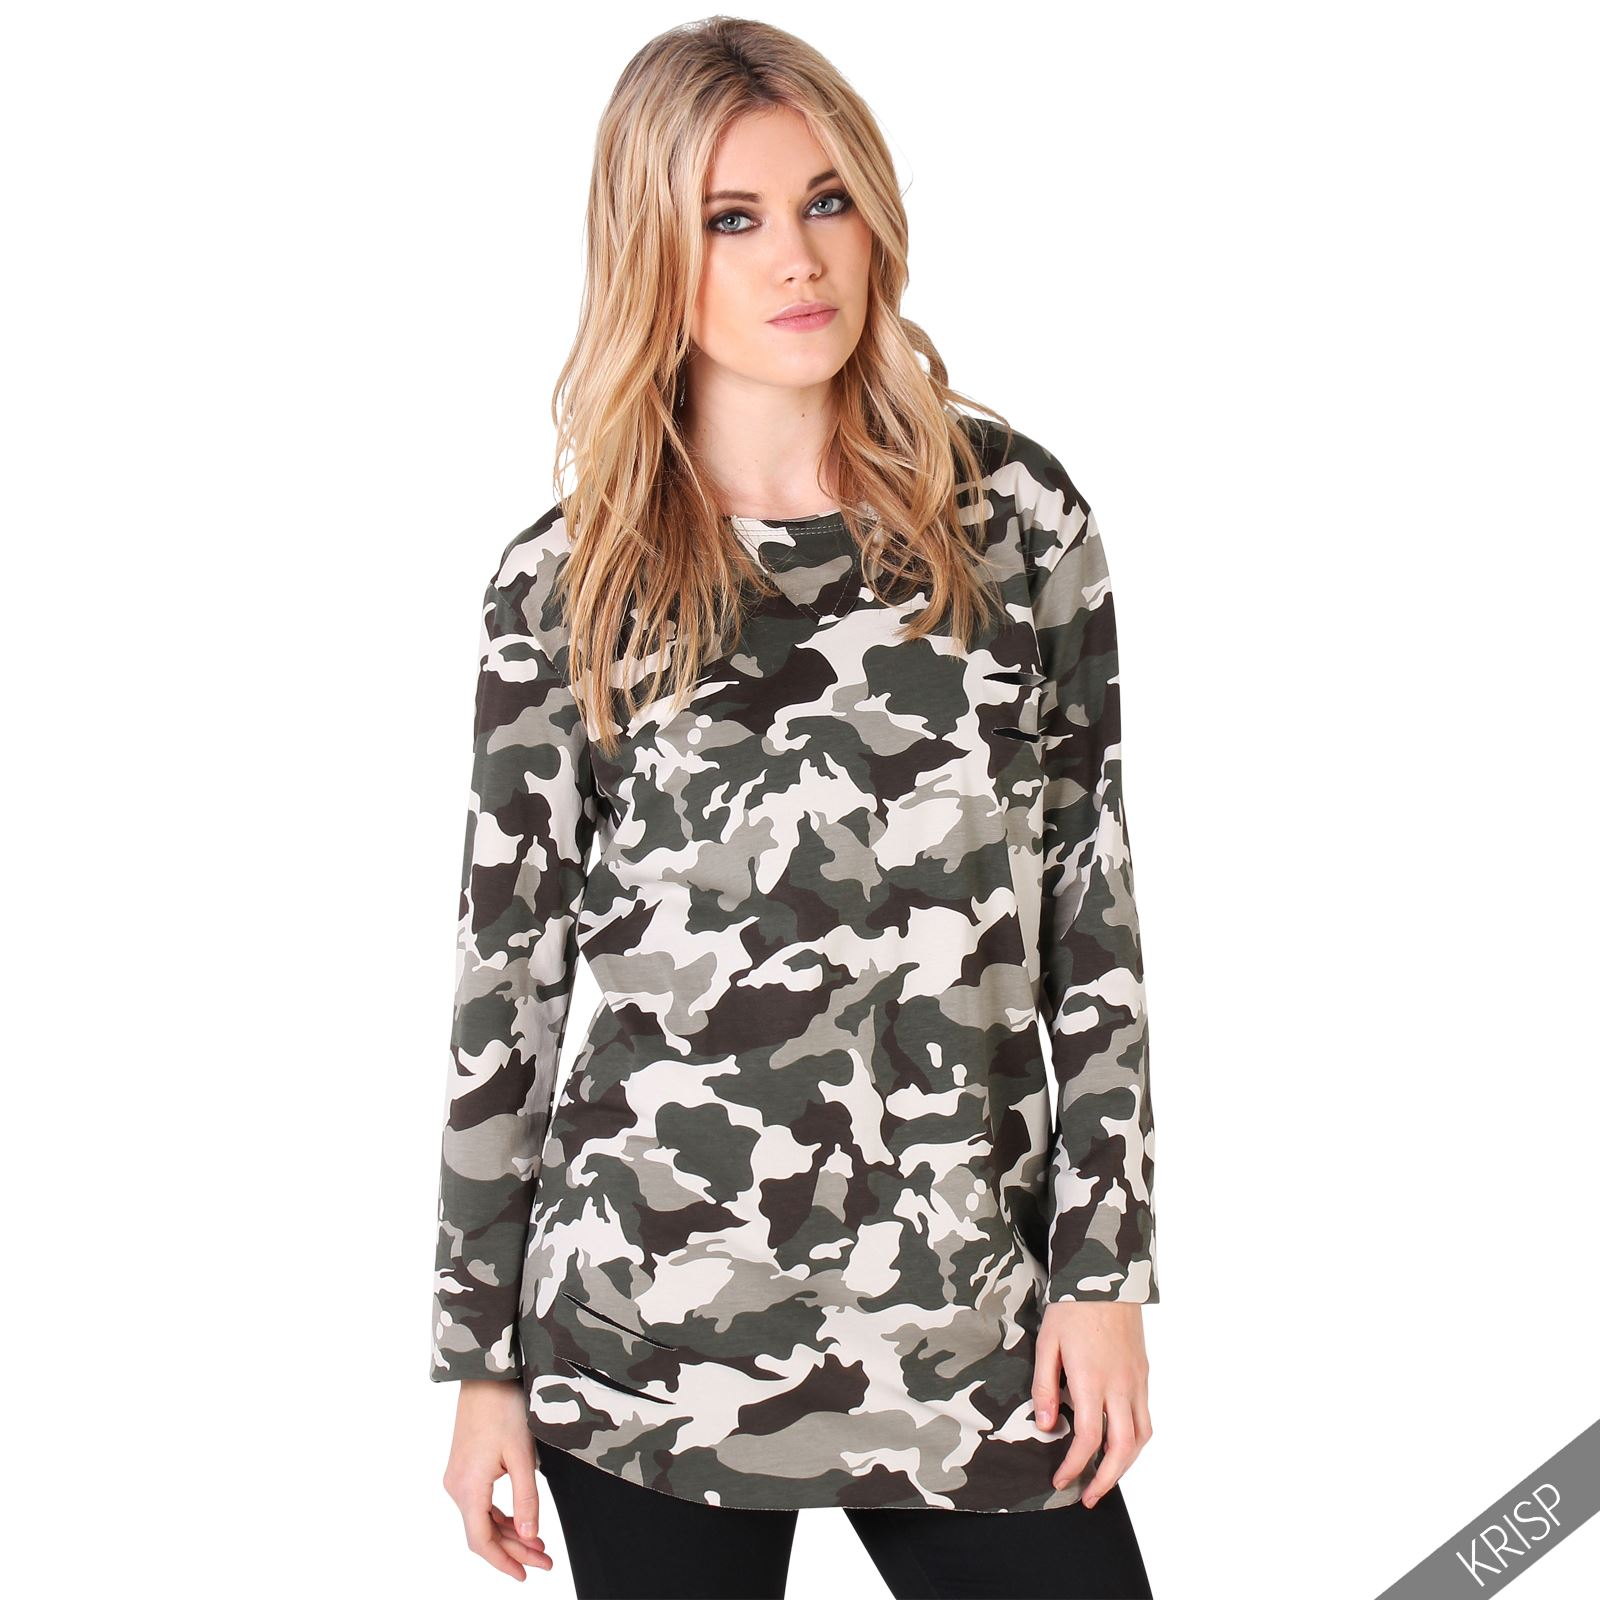 damen camouflage langarm shirt sweatshirt used style army. Black Bedroom Furniture Sets. Home Design Ideas